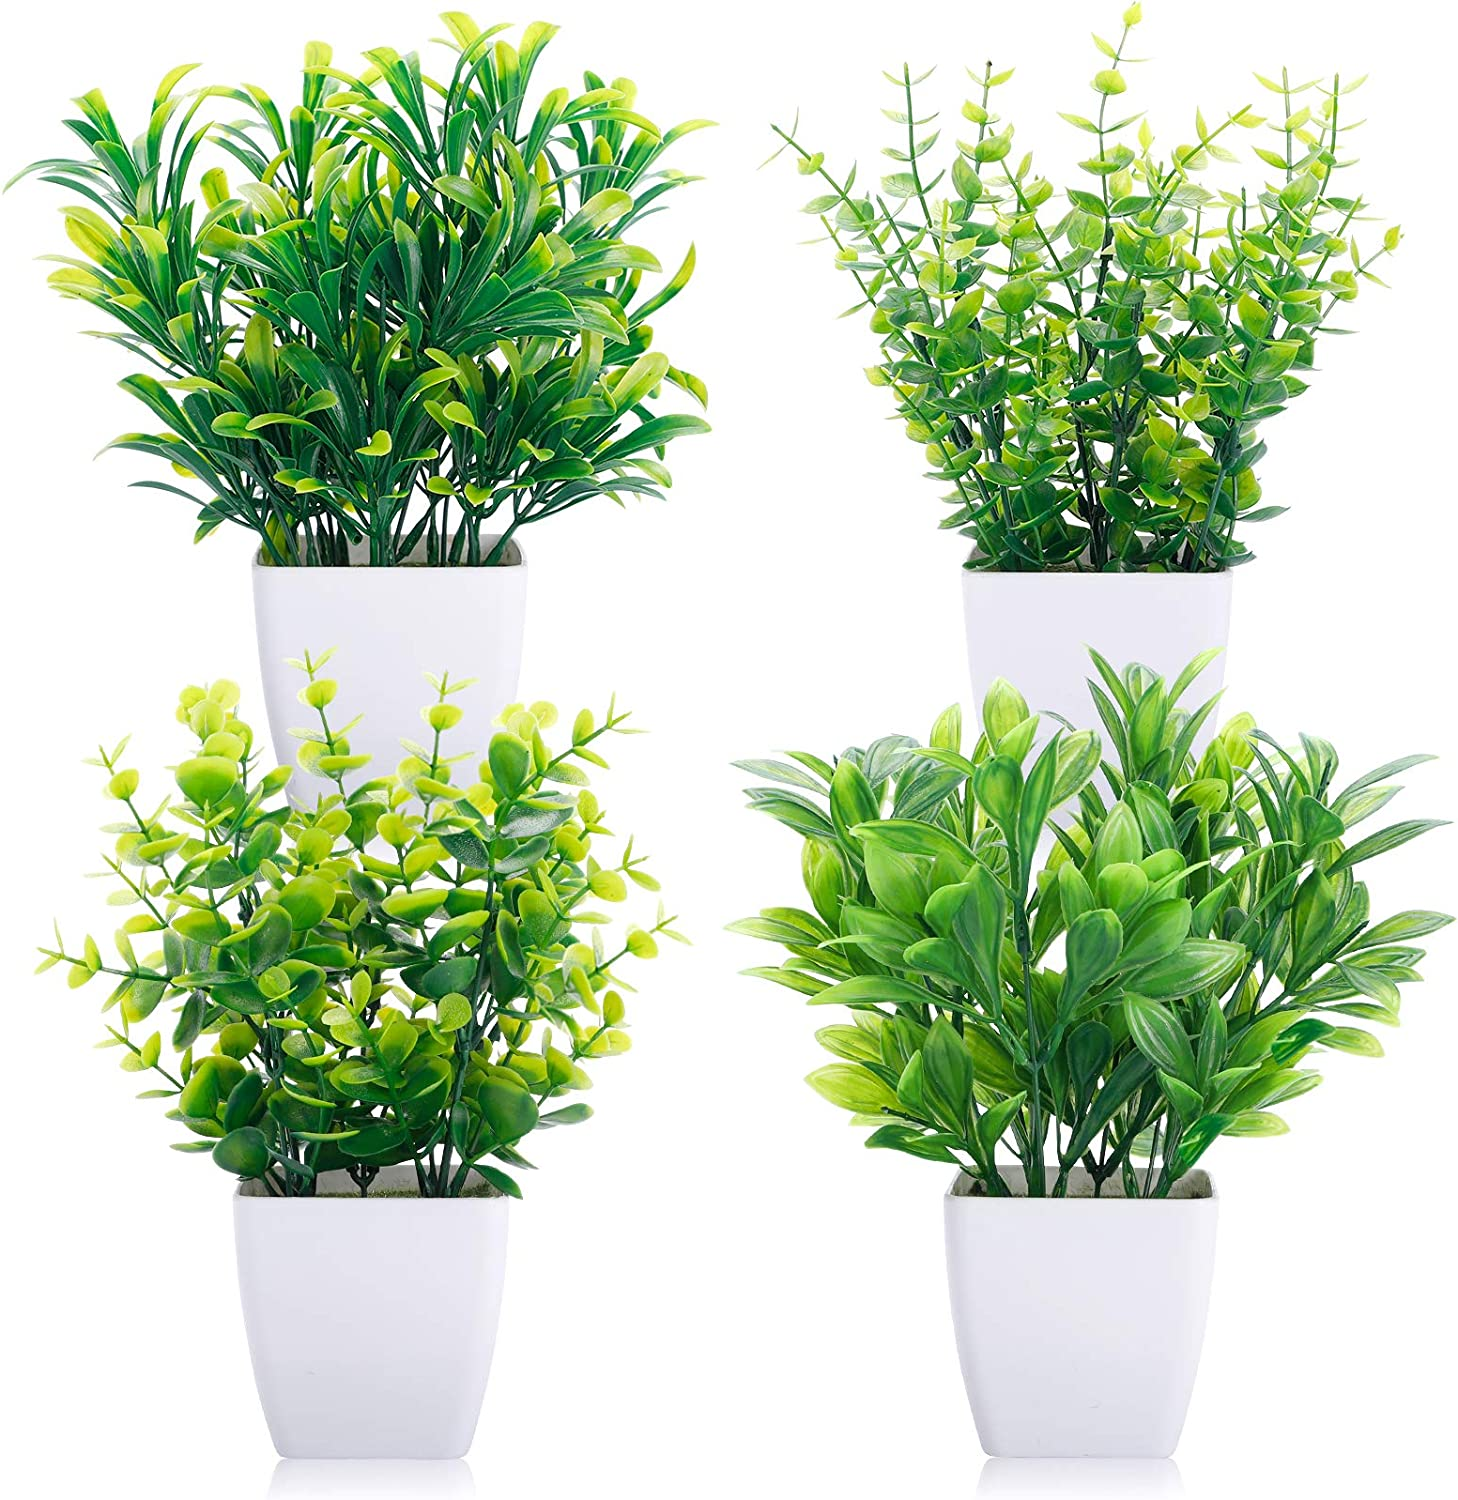 CEWOR 4 Packs Artificial Mini Potted Plants Fake Greenery Eucalyptus Plastic Pot Centerpiece for Home Office Desk Table Indoor Decor